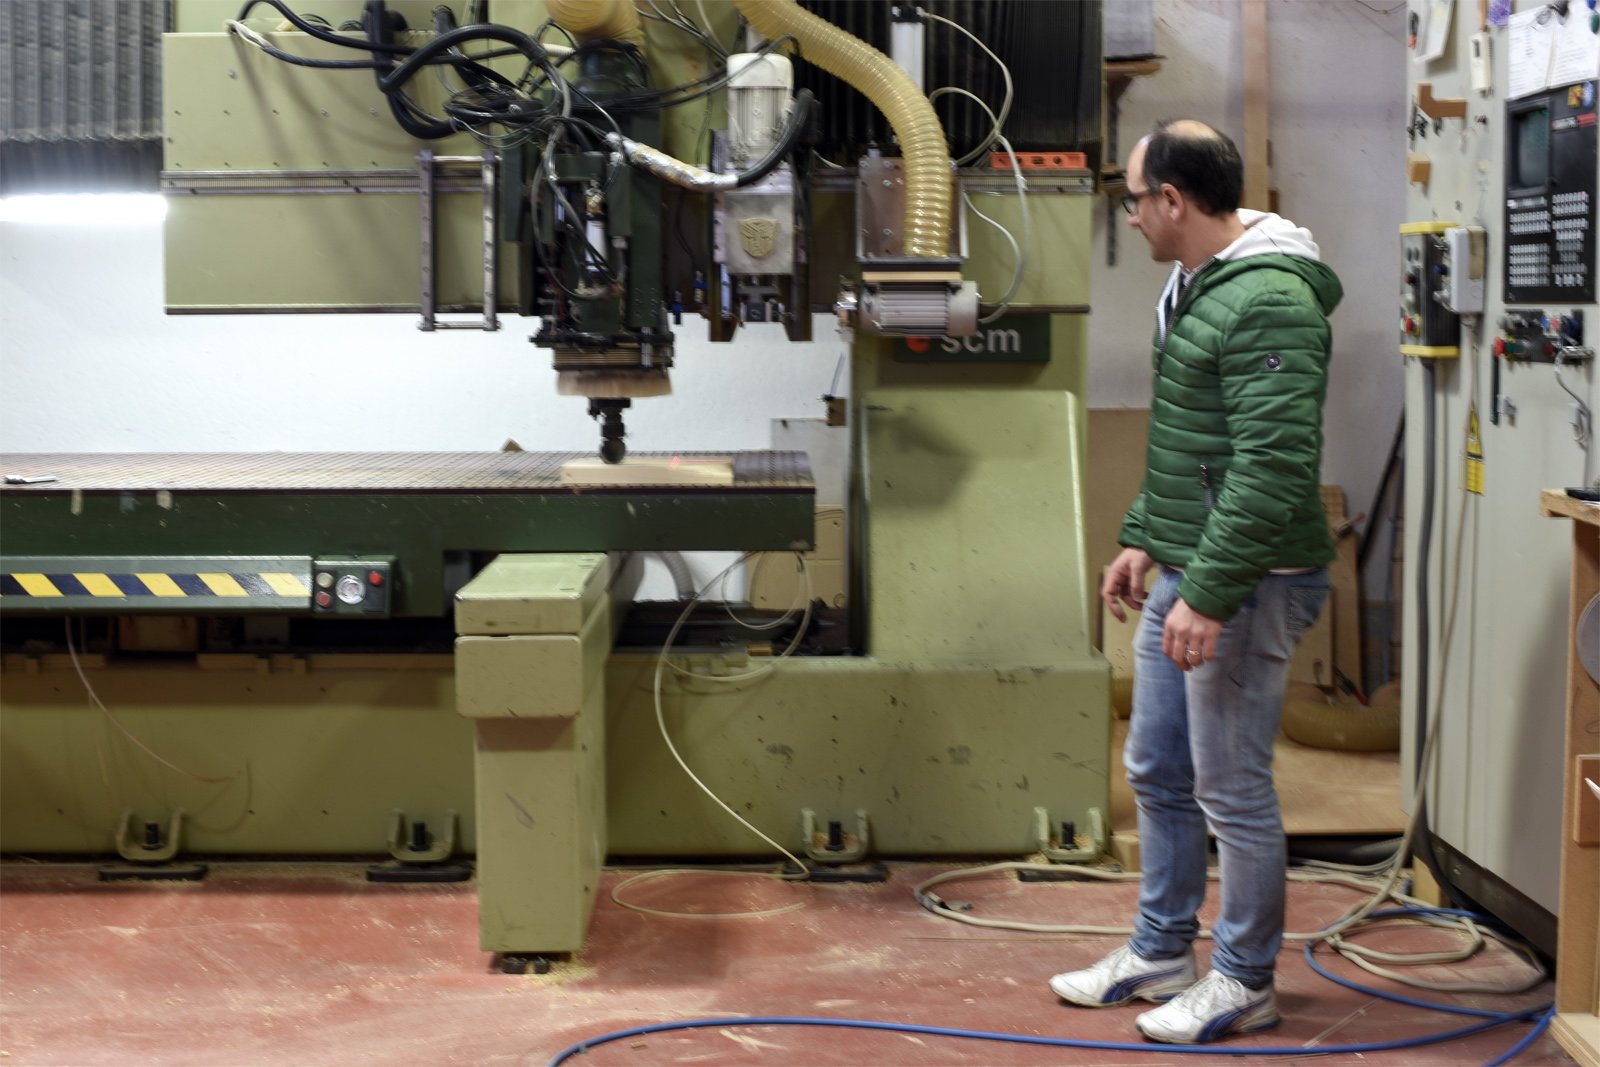 CNC router being set up for a job.